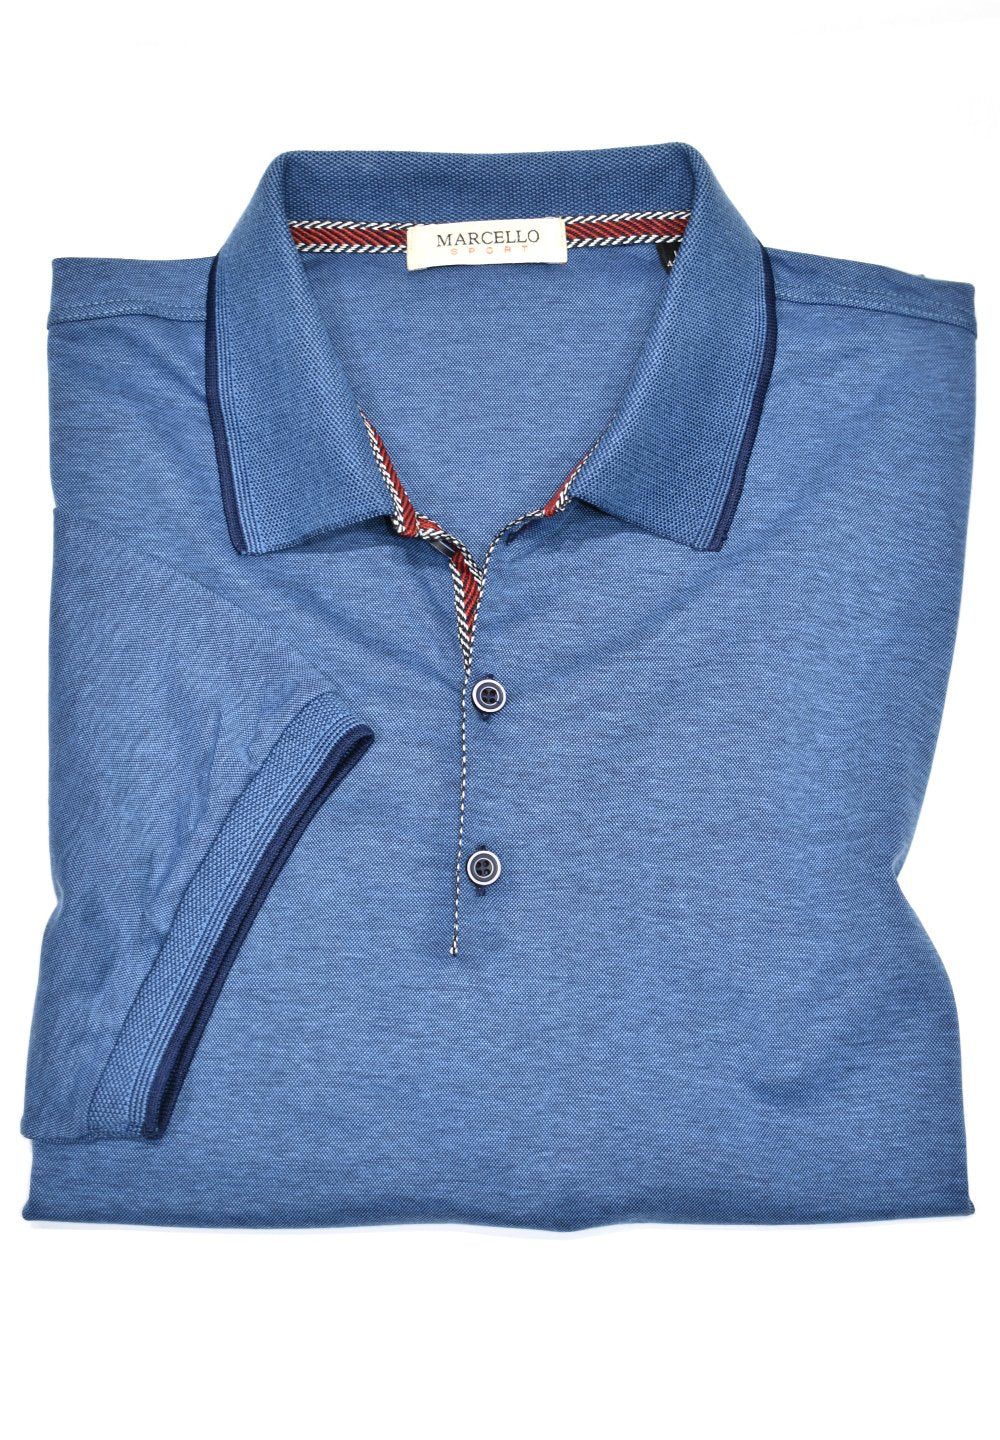 403 Denim Polo - Marcello Sport